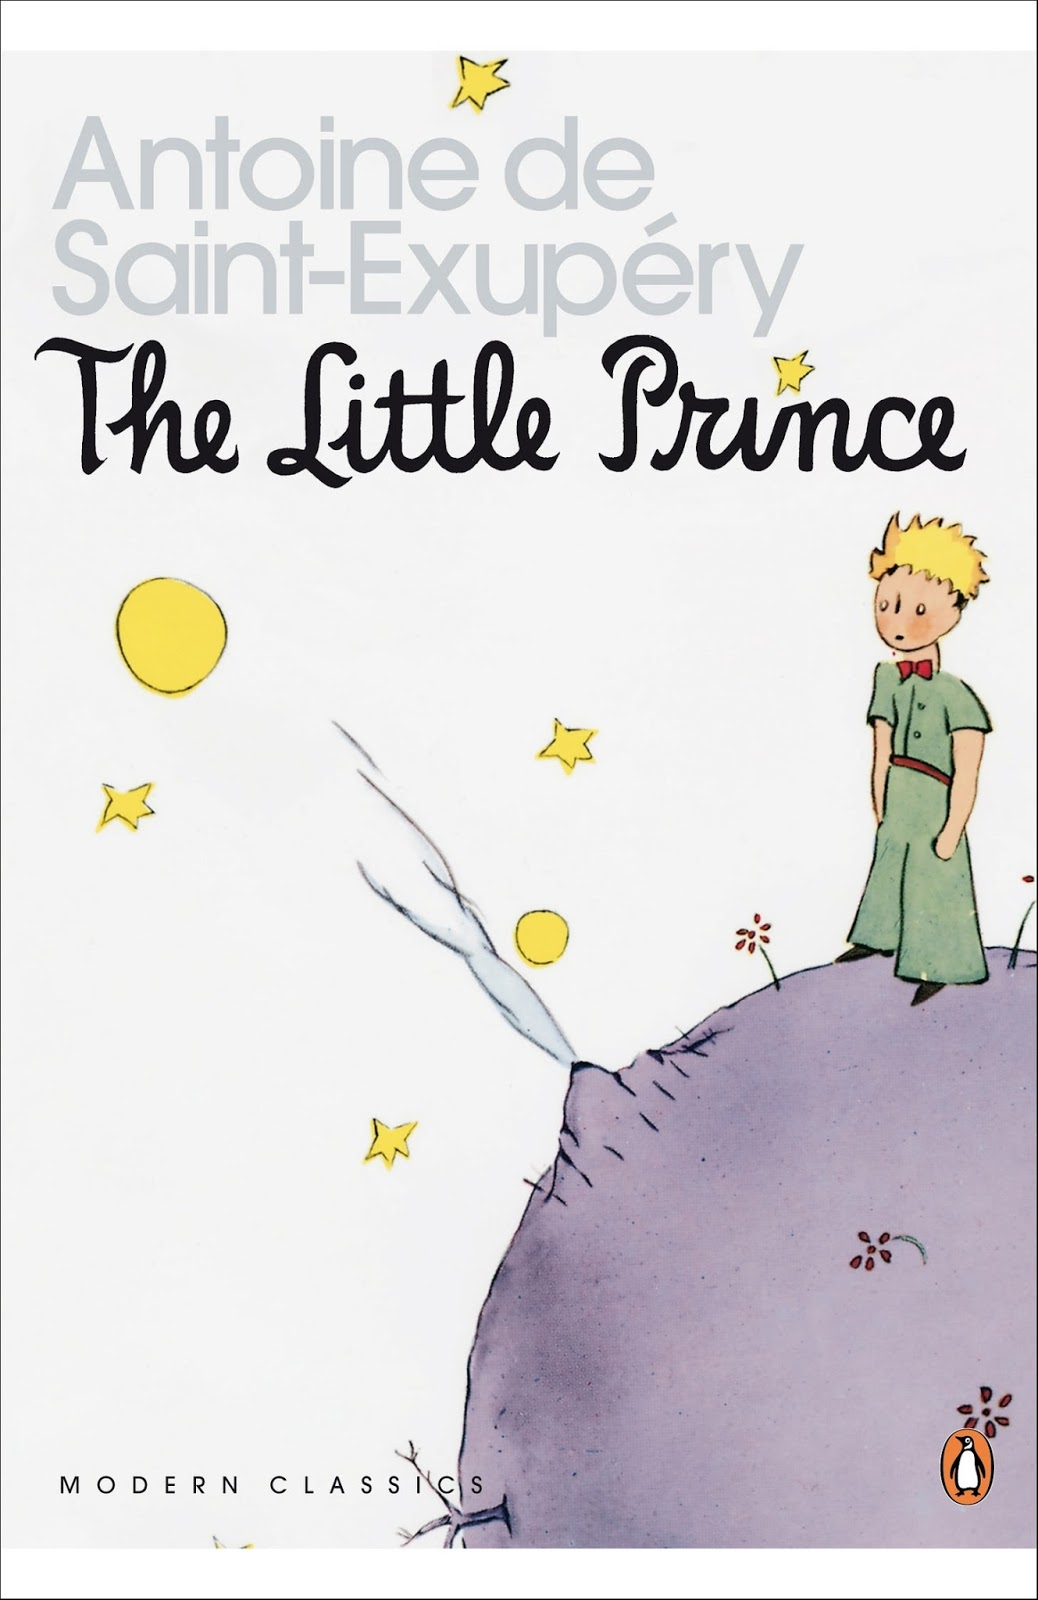 https://www.goodreads.com/book/show/157993.The_Little_Prince